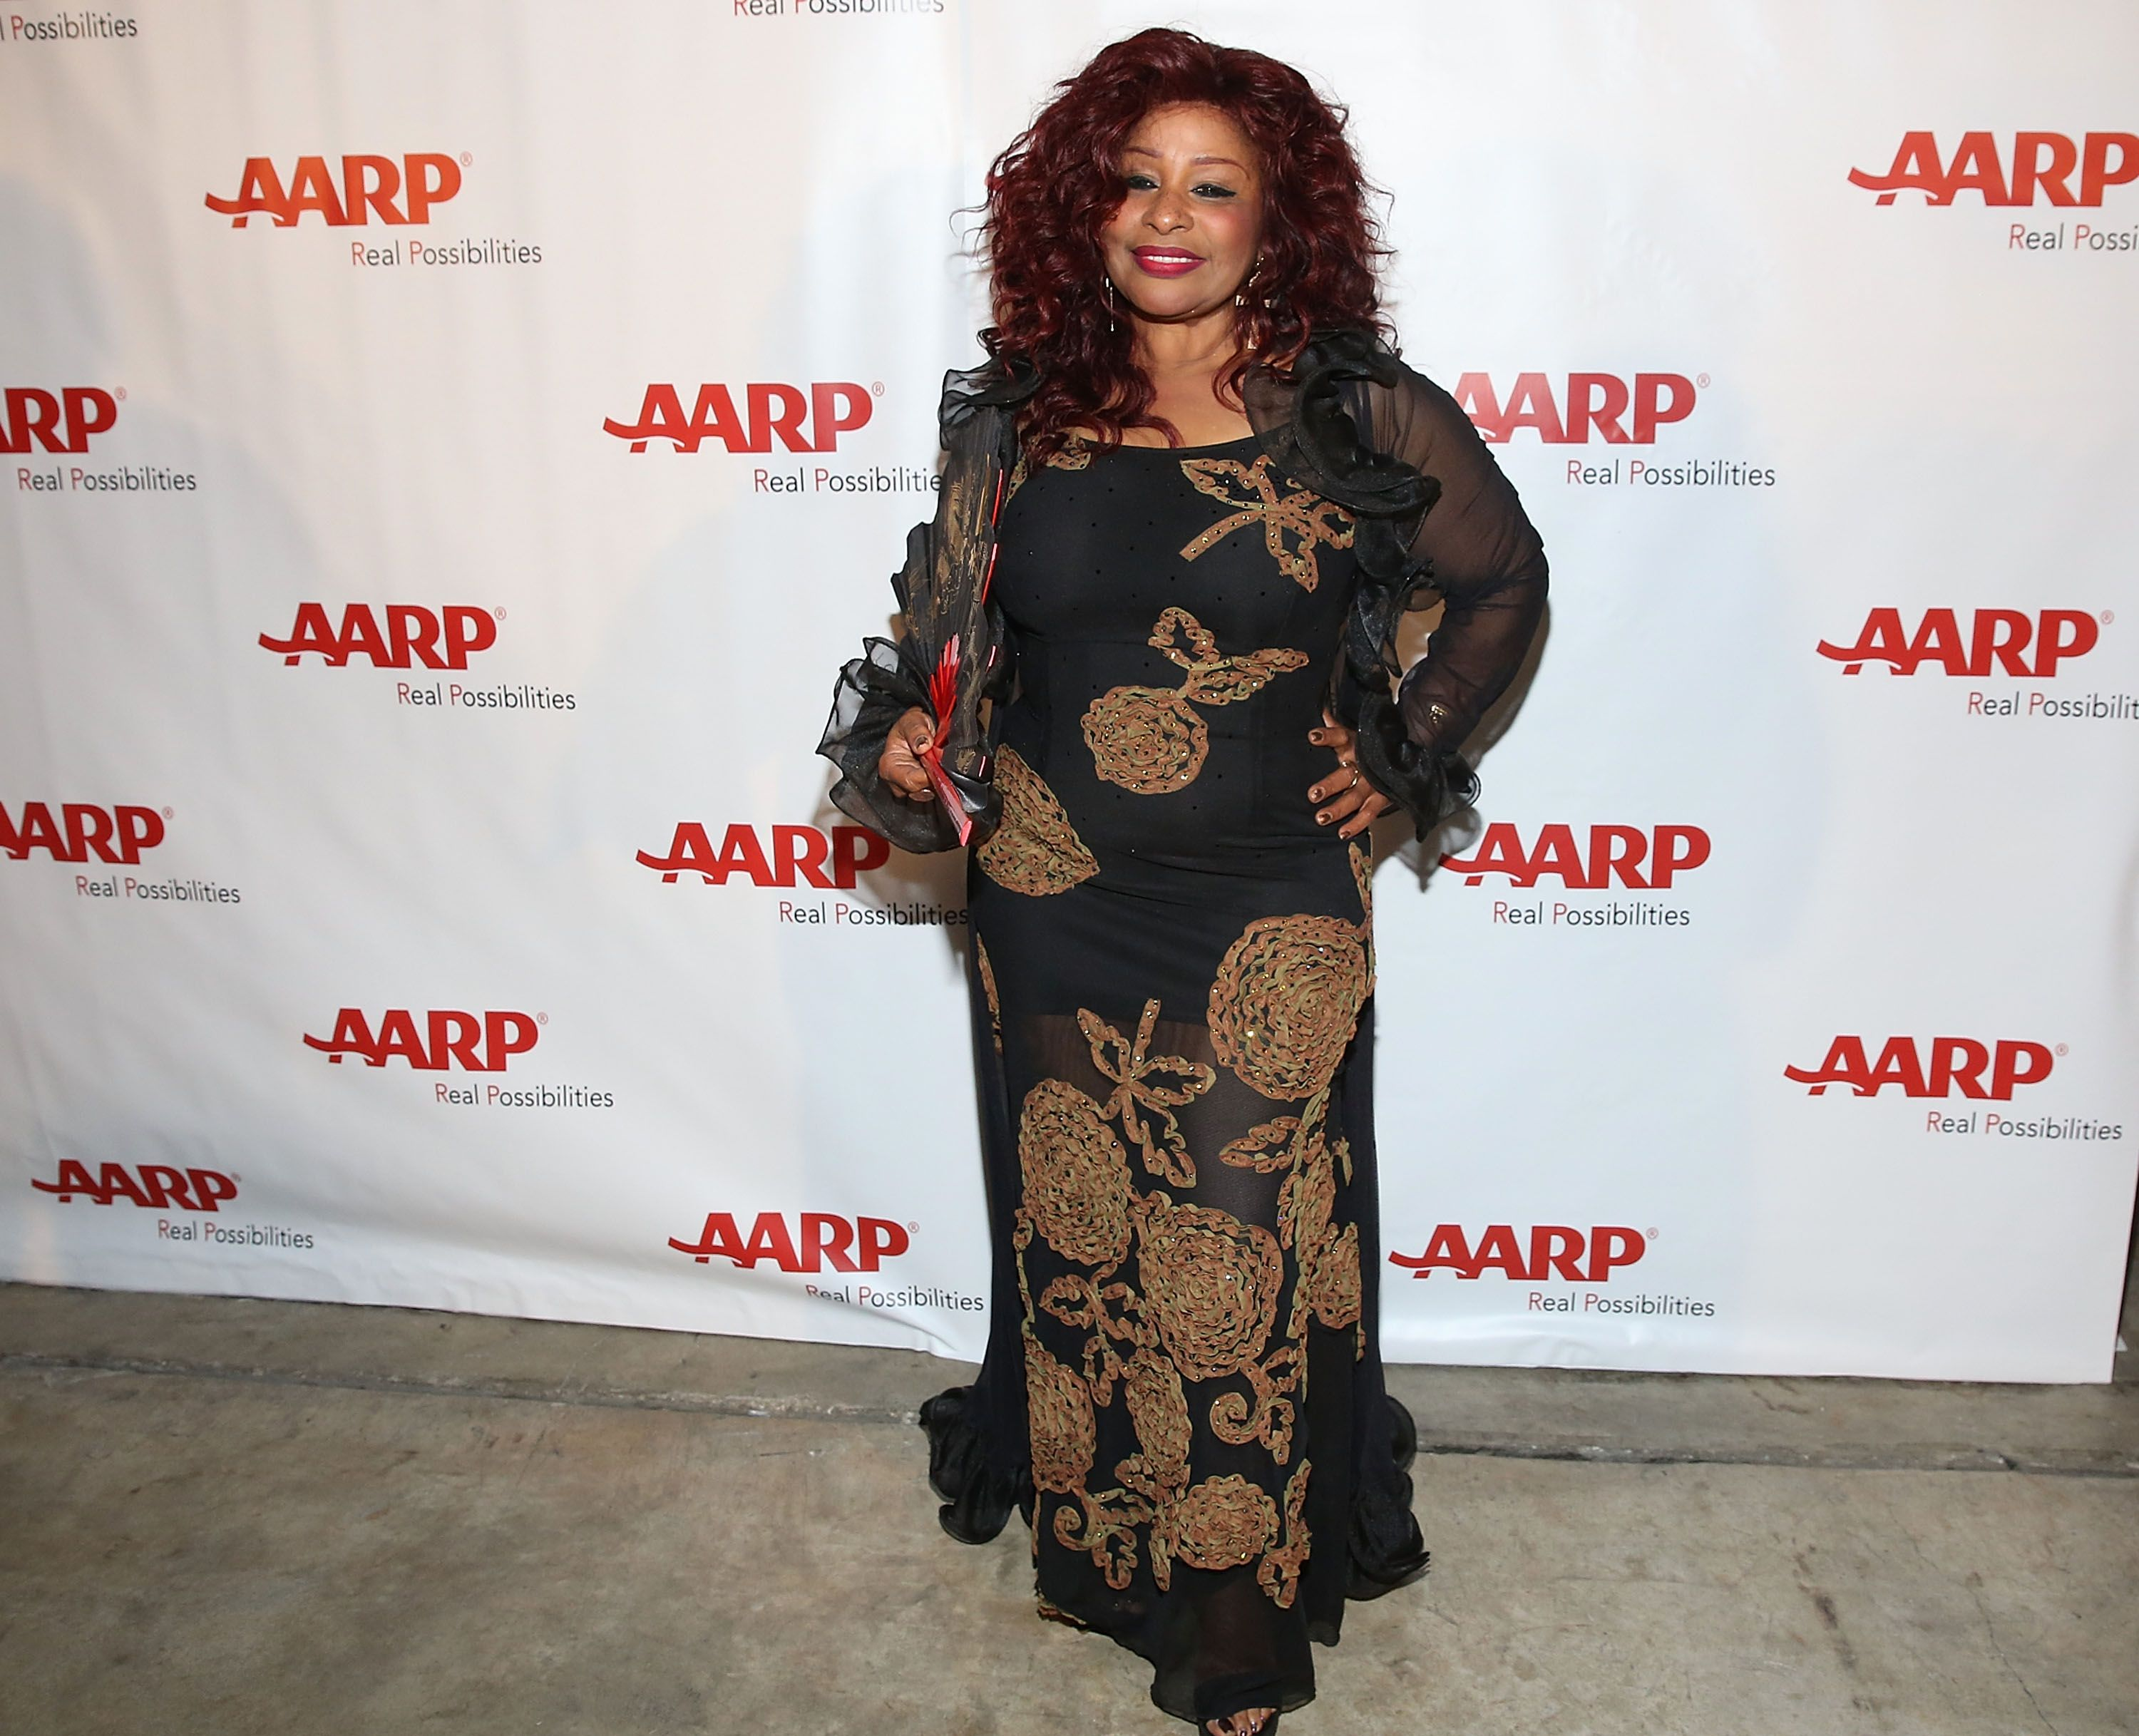 Chaka Khan attends the AARP Superstar 2015 finale at AARP Life@50+ Expo at the Miami Beach Convention Center on May 15, 2015. | Photo: Getty Images